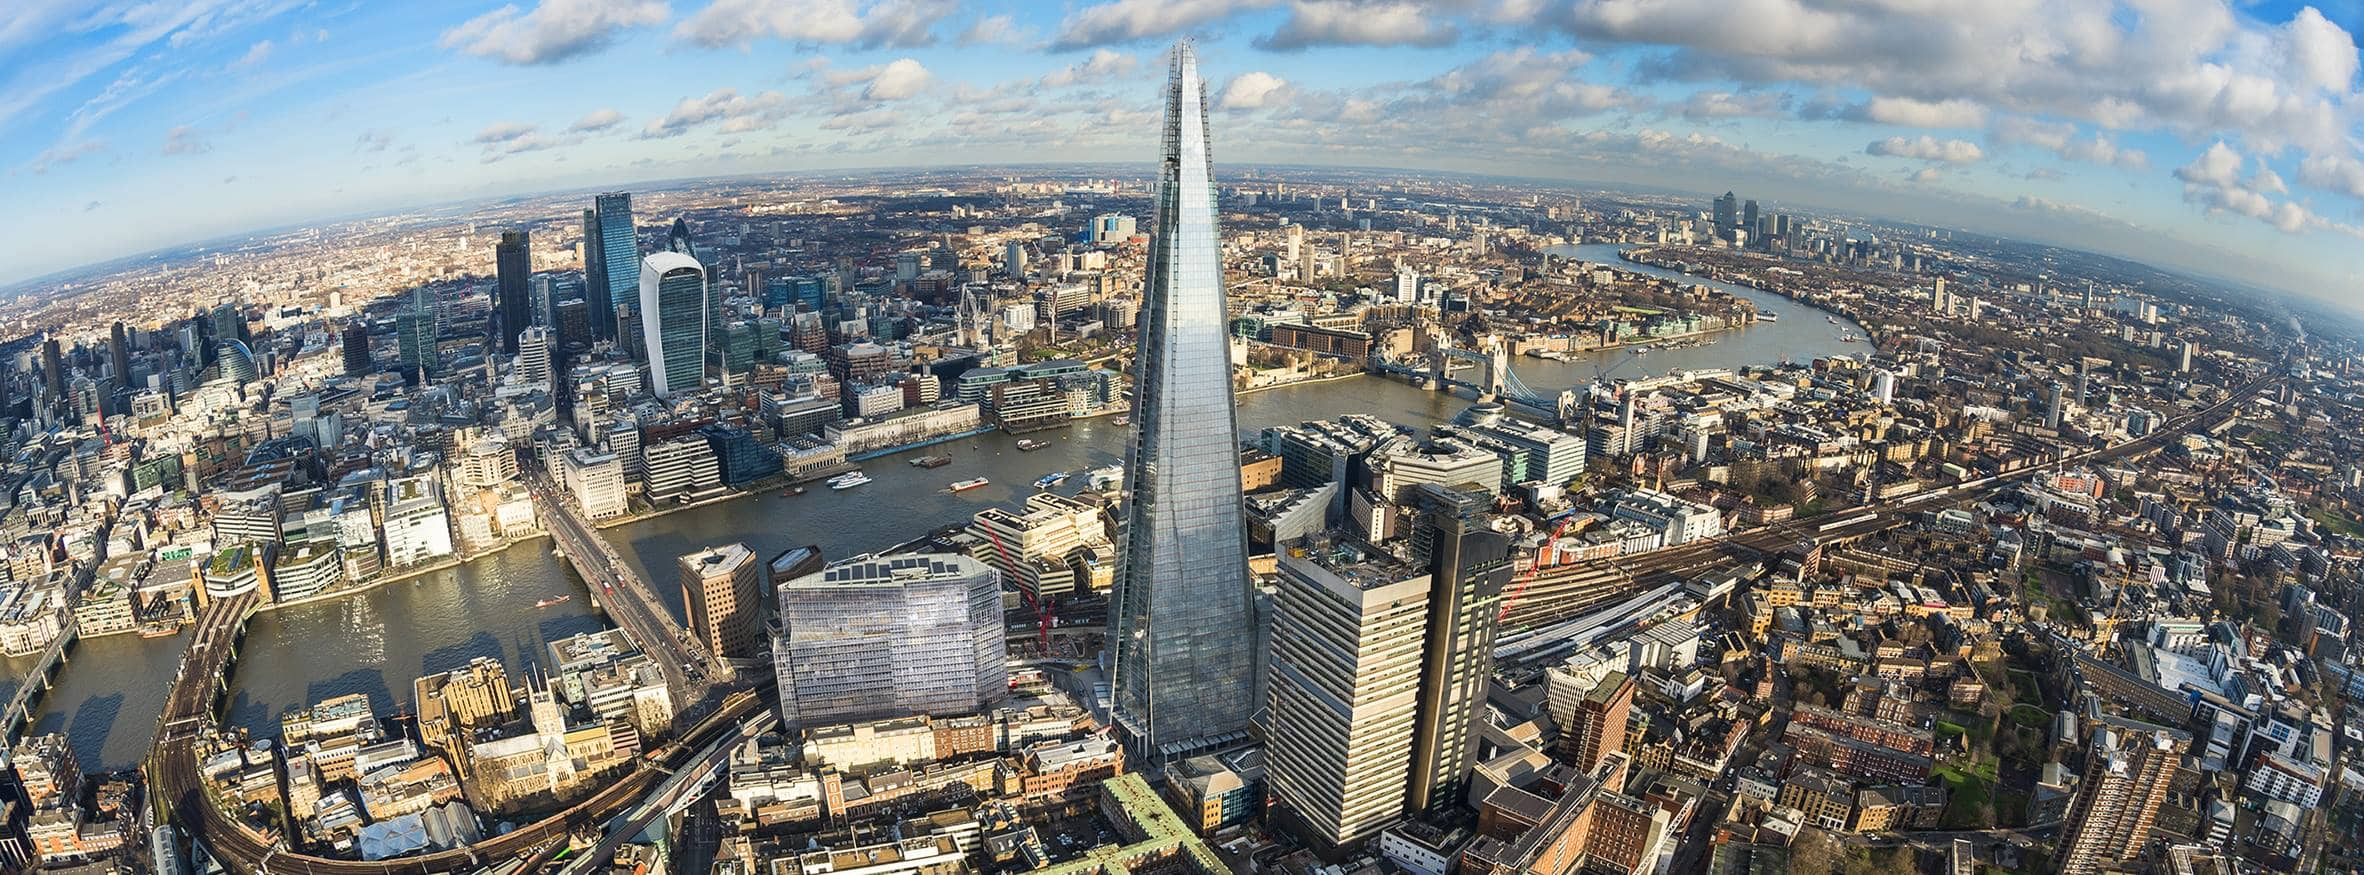 What to expect in an operated tour and a shoestring trip to London